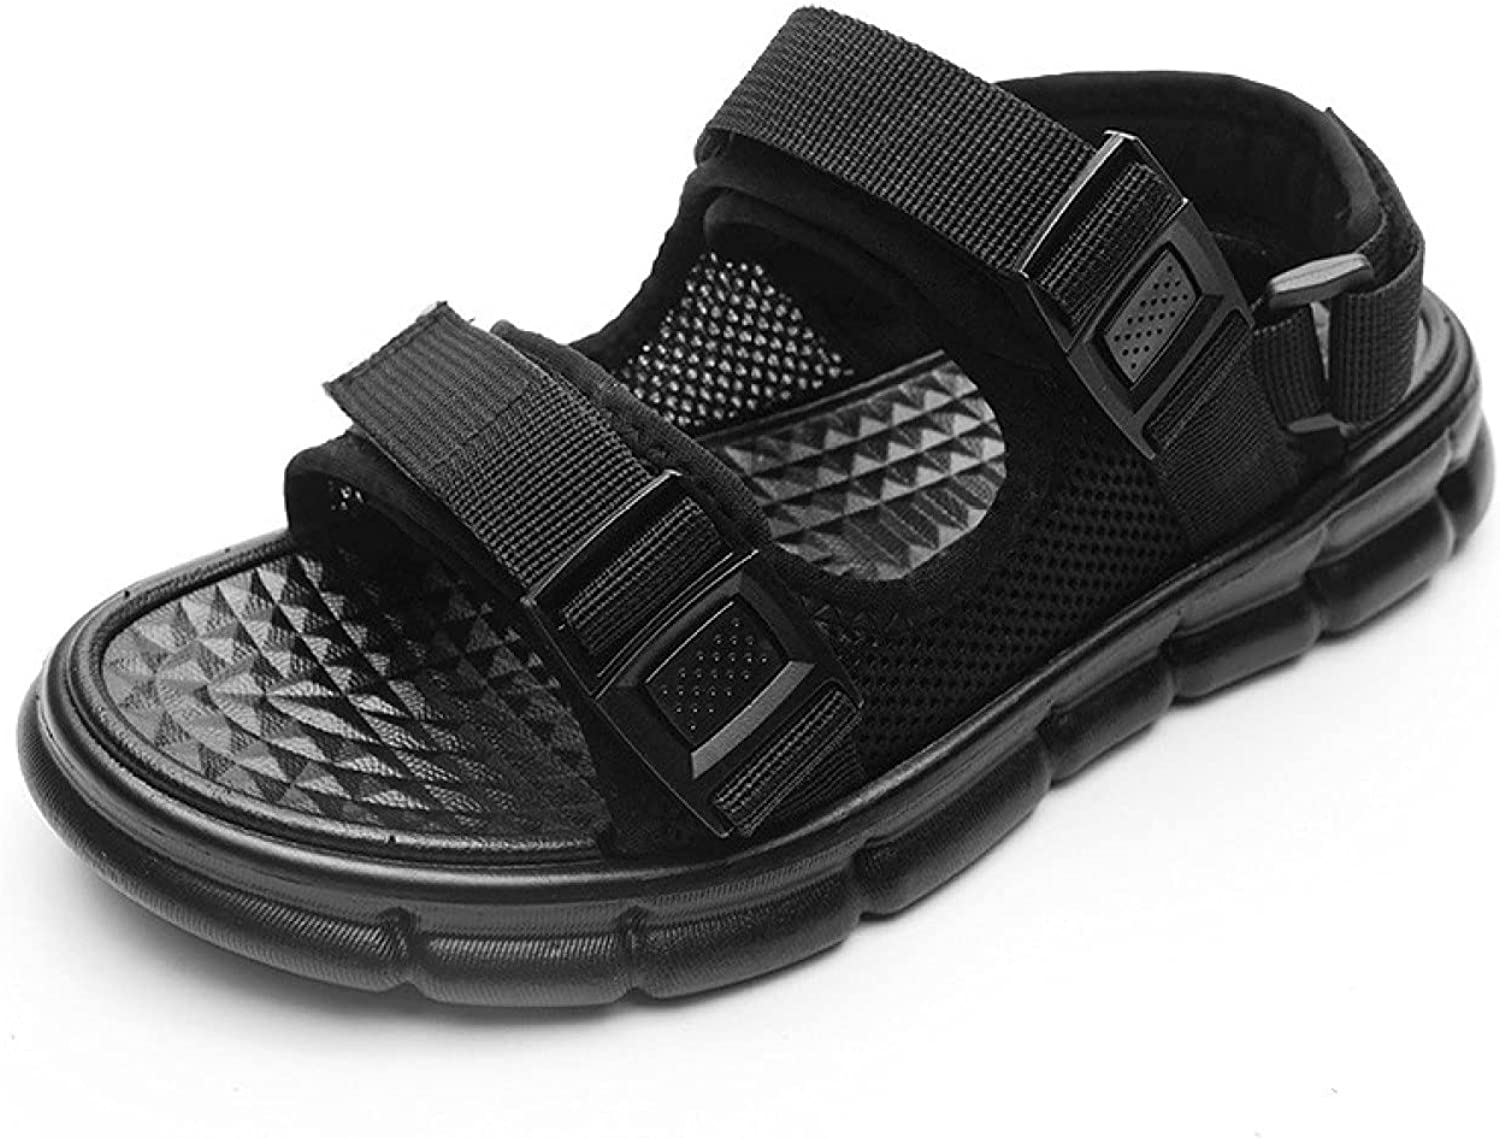 Mens Soft Sandals Summer Sports Discount Translated is also underway Webbing Indoor and for C Outdoor